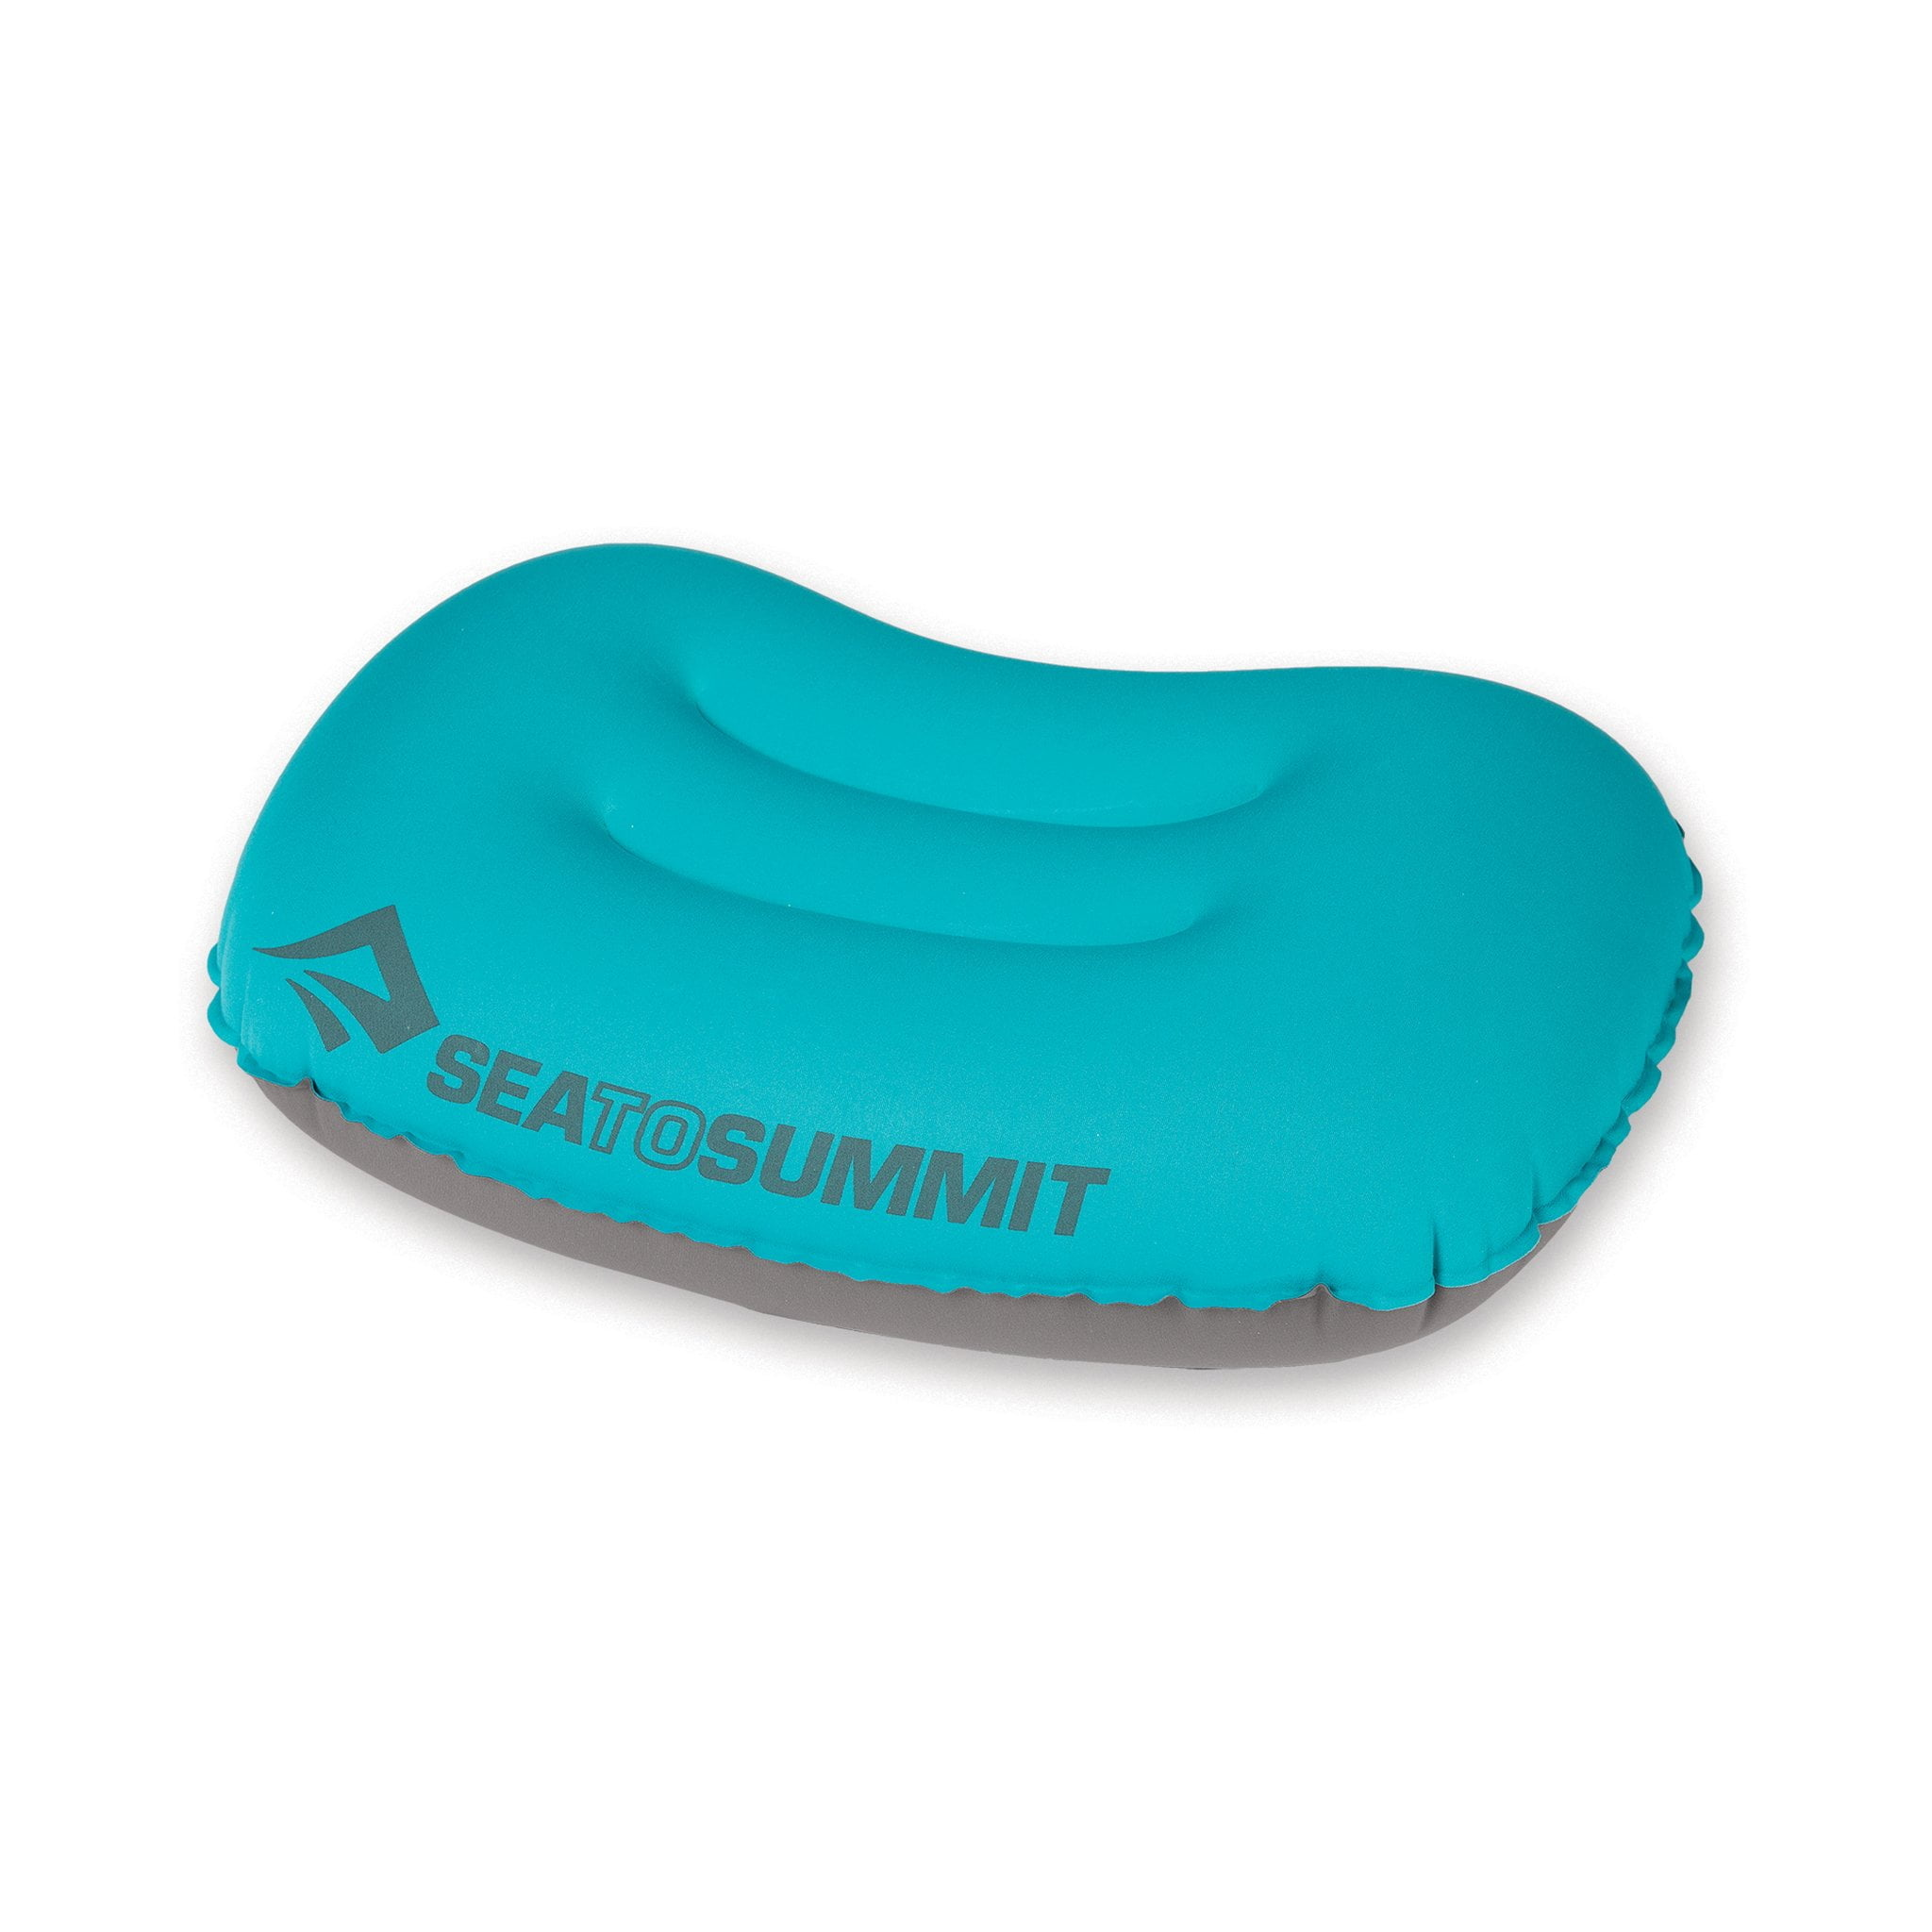 TRAVESSEIRO ULTRALIGHT PILLOW LARGE AZUL- SEA TO SUMMIT